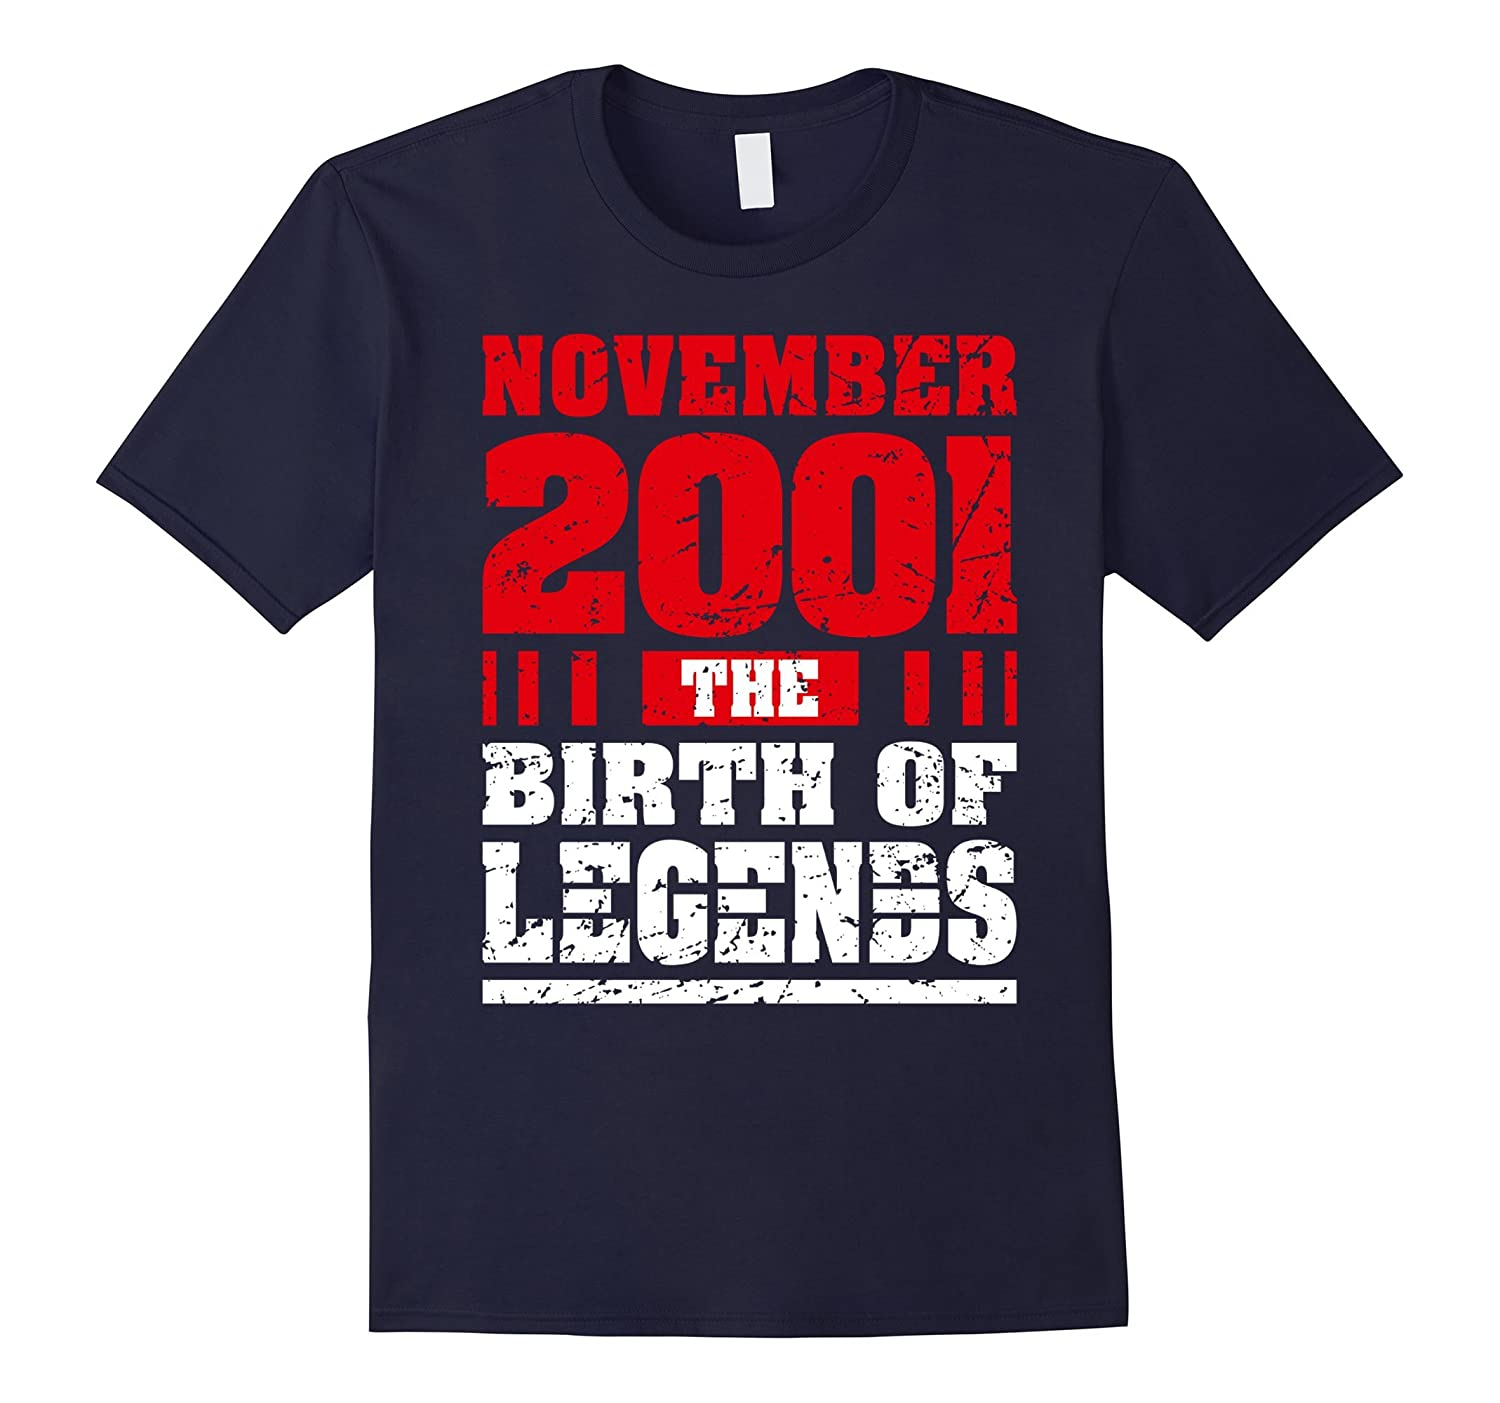 16 Years Old 16th Birthday Born in November 2001 Teen Shirts-T-Shirt